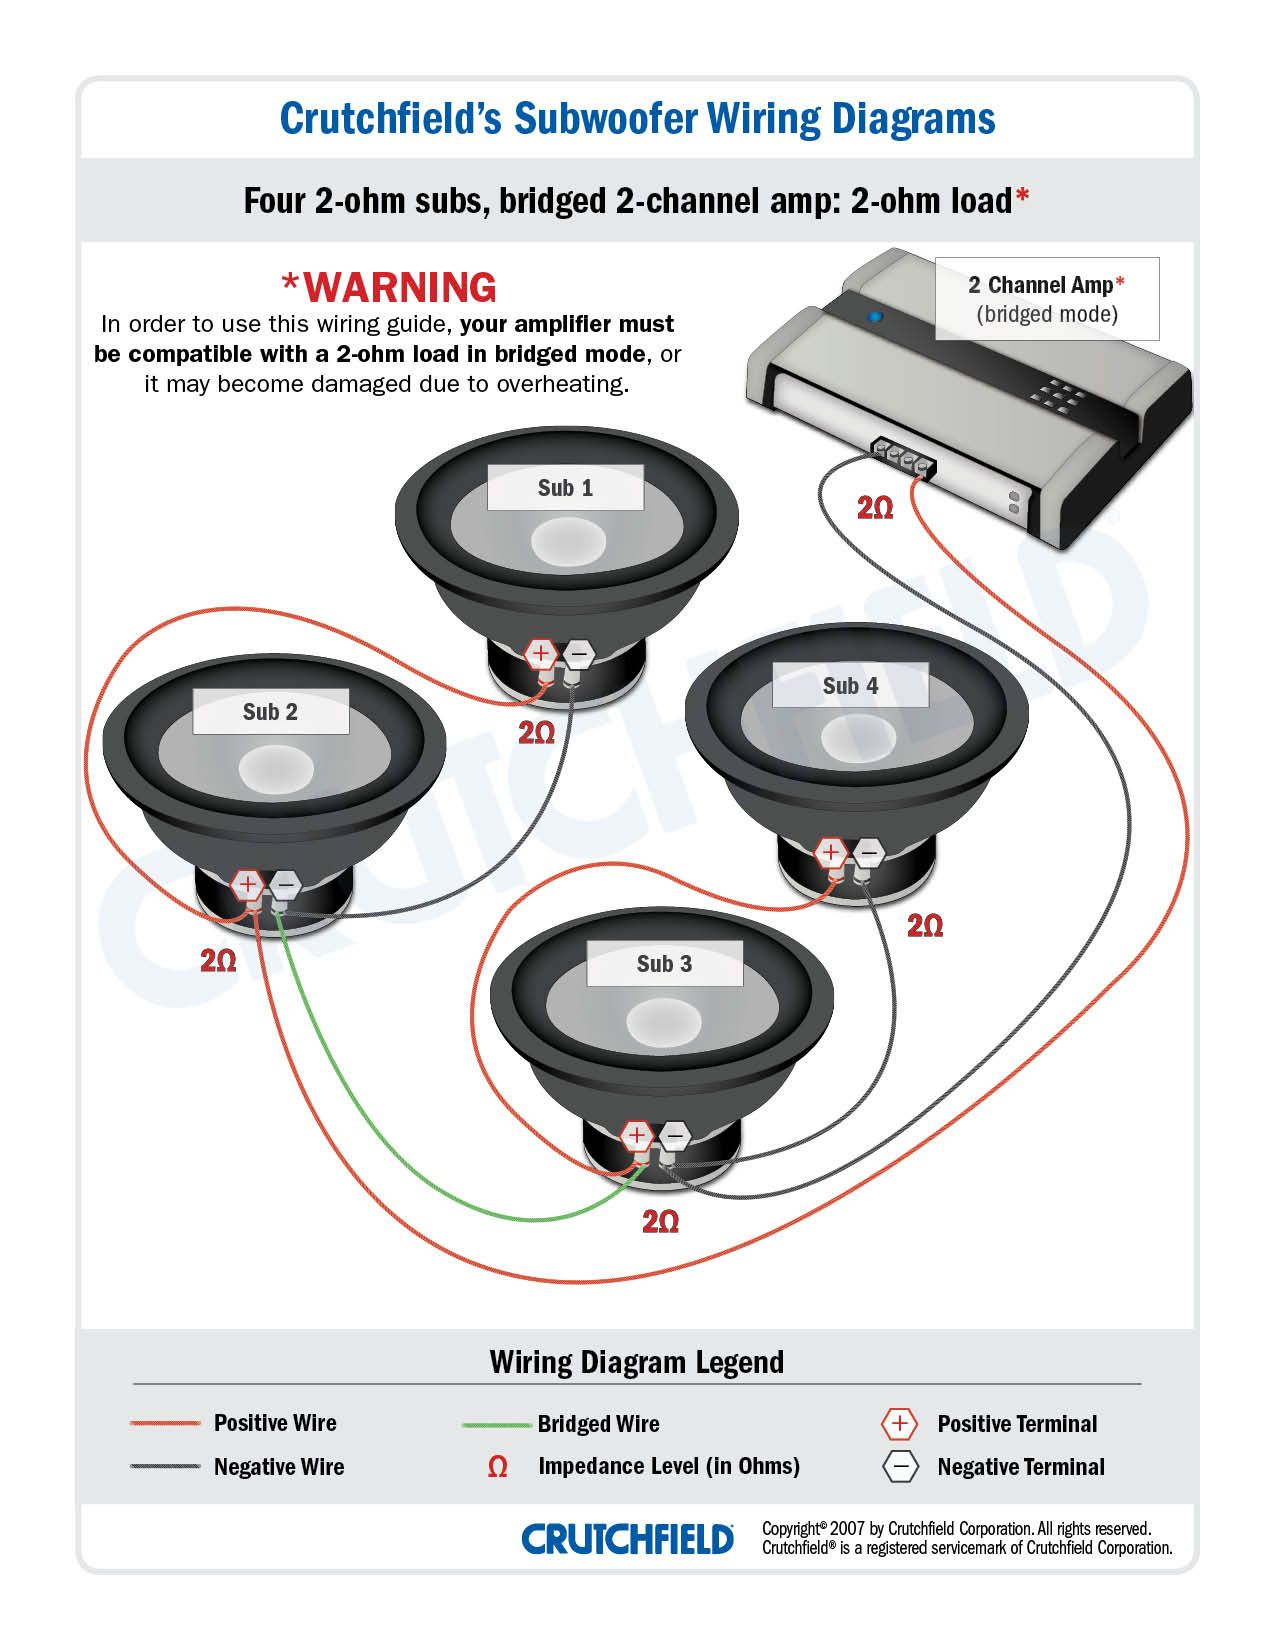 top 10 subwoofer wiring diagram free download 4 svc 2 ohm 2 ch low rh pinterest com 4 Ohm Sub Wiring-Diagram 4 Ohm Sub Wiring-Diagram